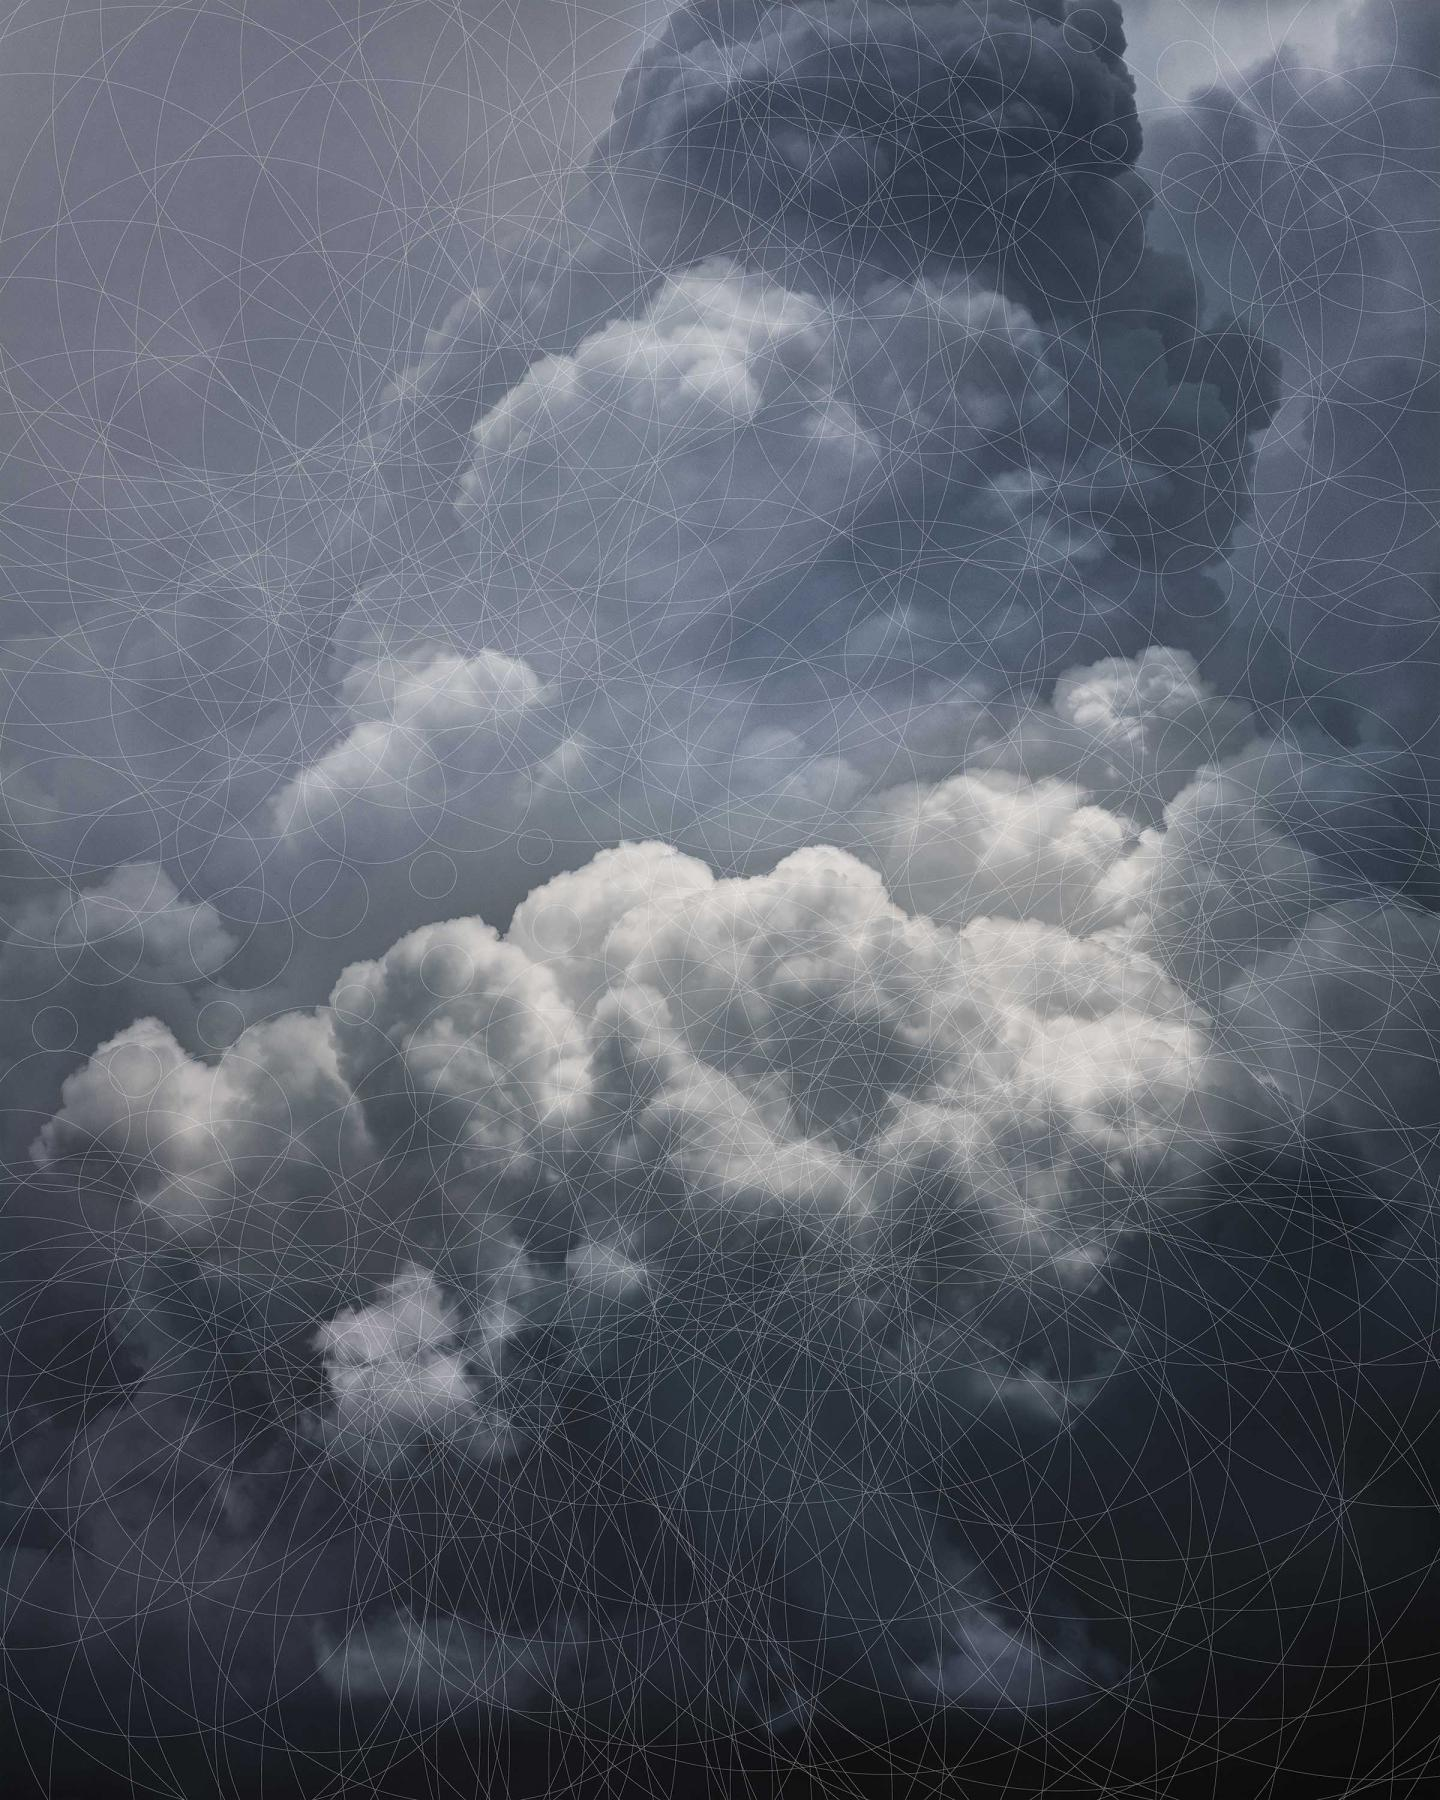 Trevor Paglen  CLOUD #865 Hough Circle Transform, 2019 Dye sublimation print 60 x 48 in.  ©Trevor Paglen Courtesy of: the Artist and PACE Gallery